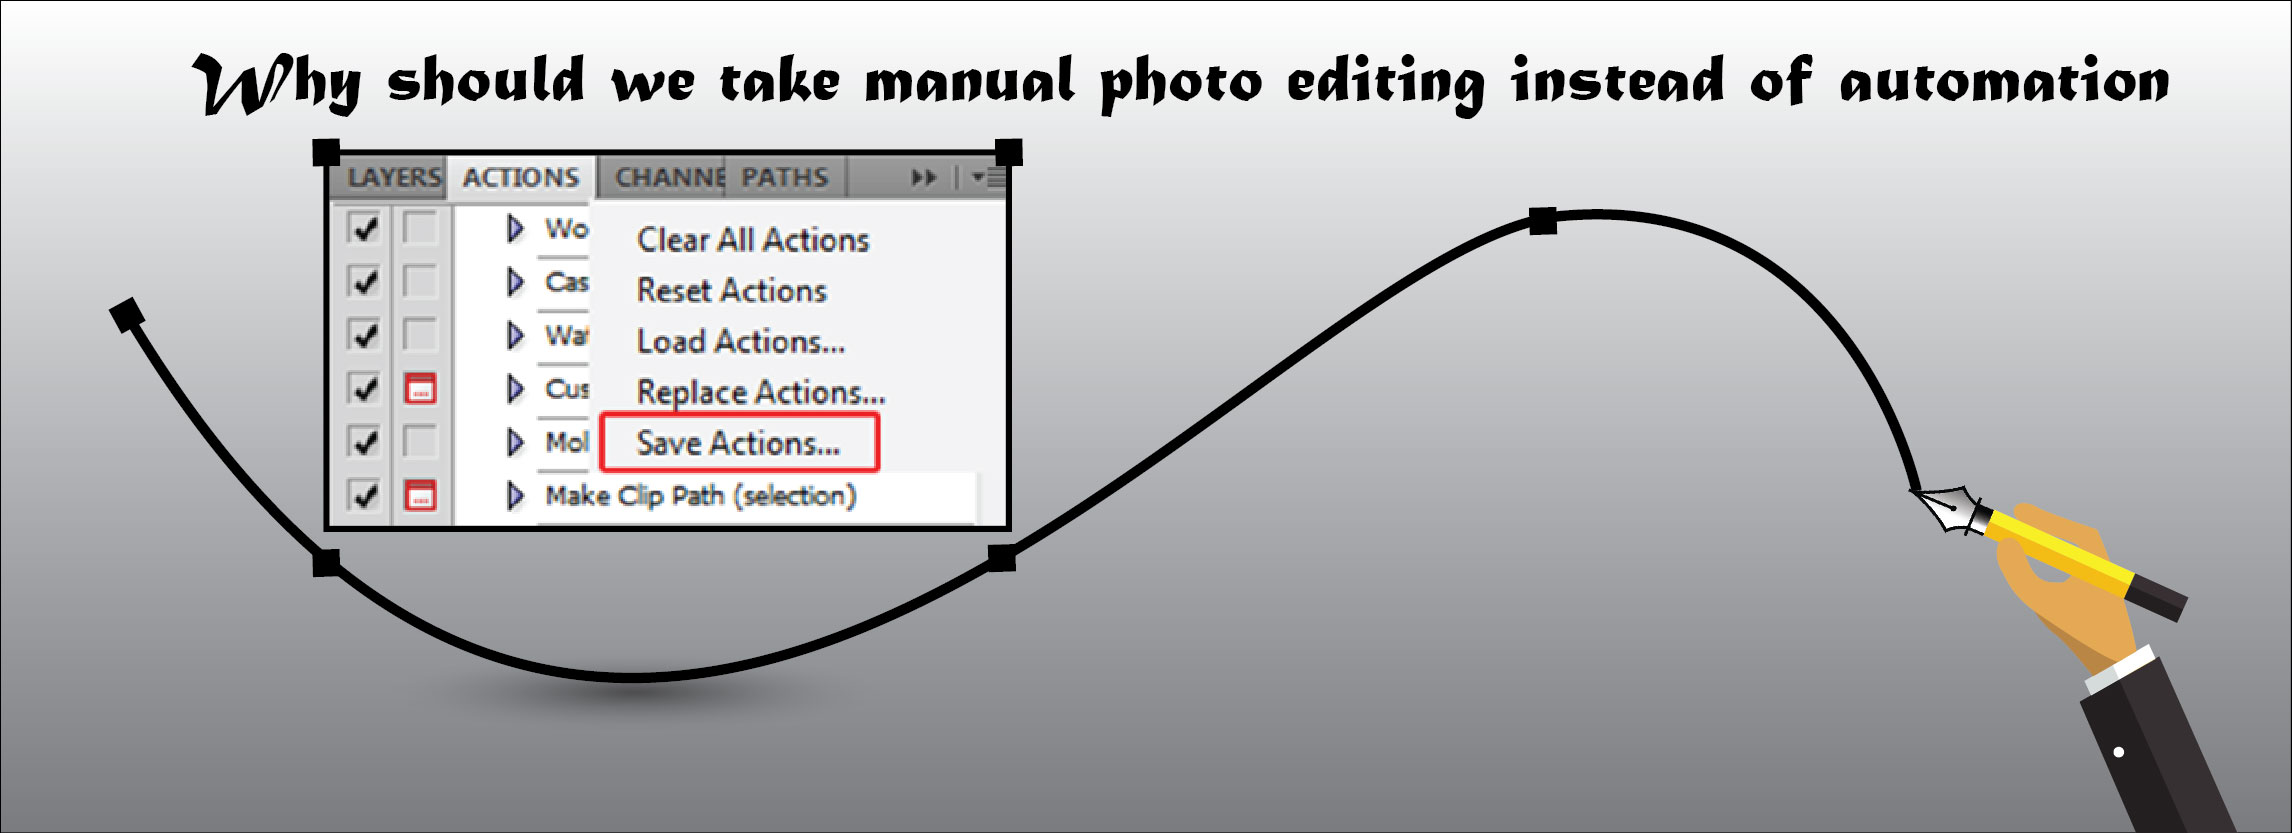 Why should we take manual photo editing instead of automation-01